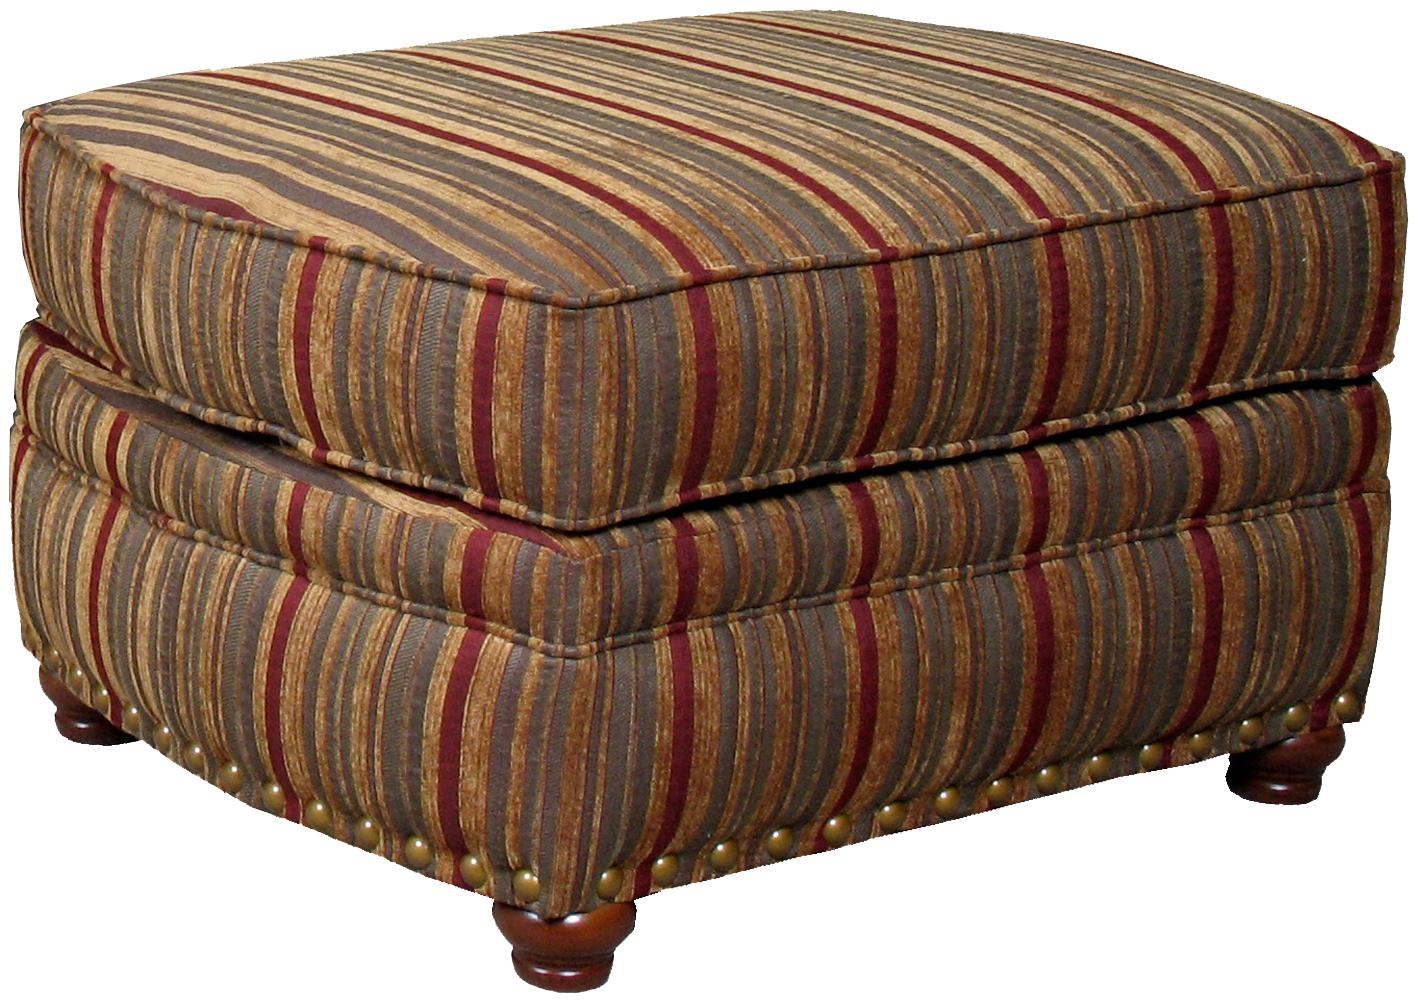 9780 Ottoman by Mayo at Wilcox Furniture